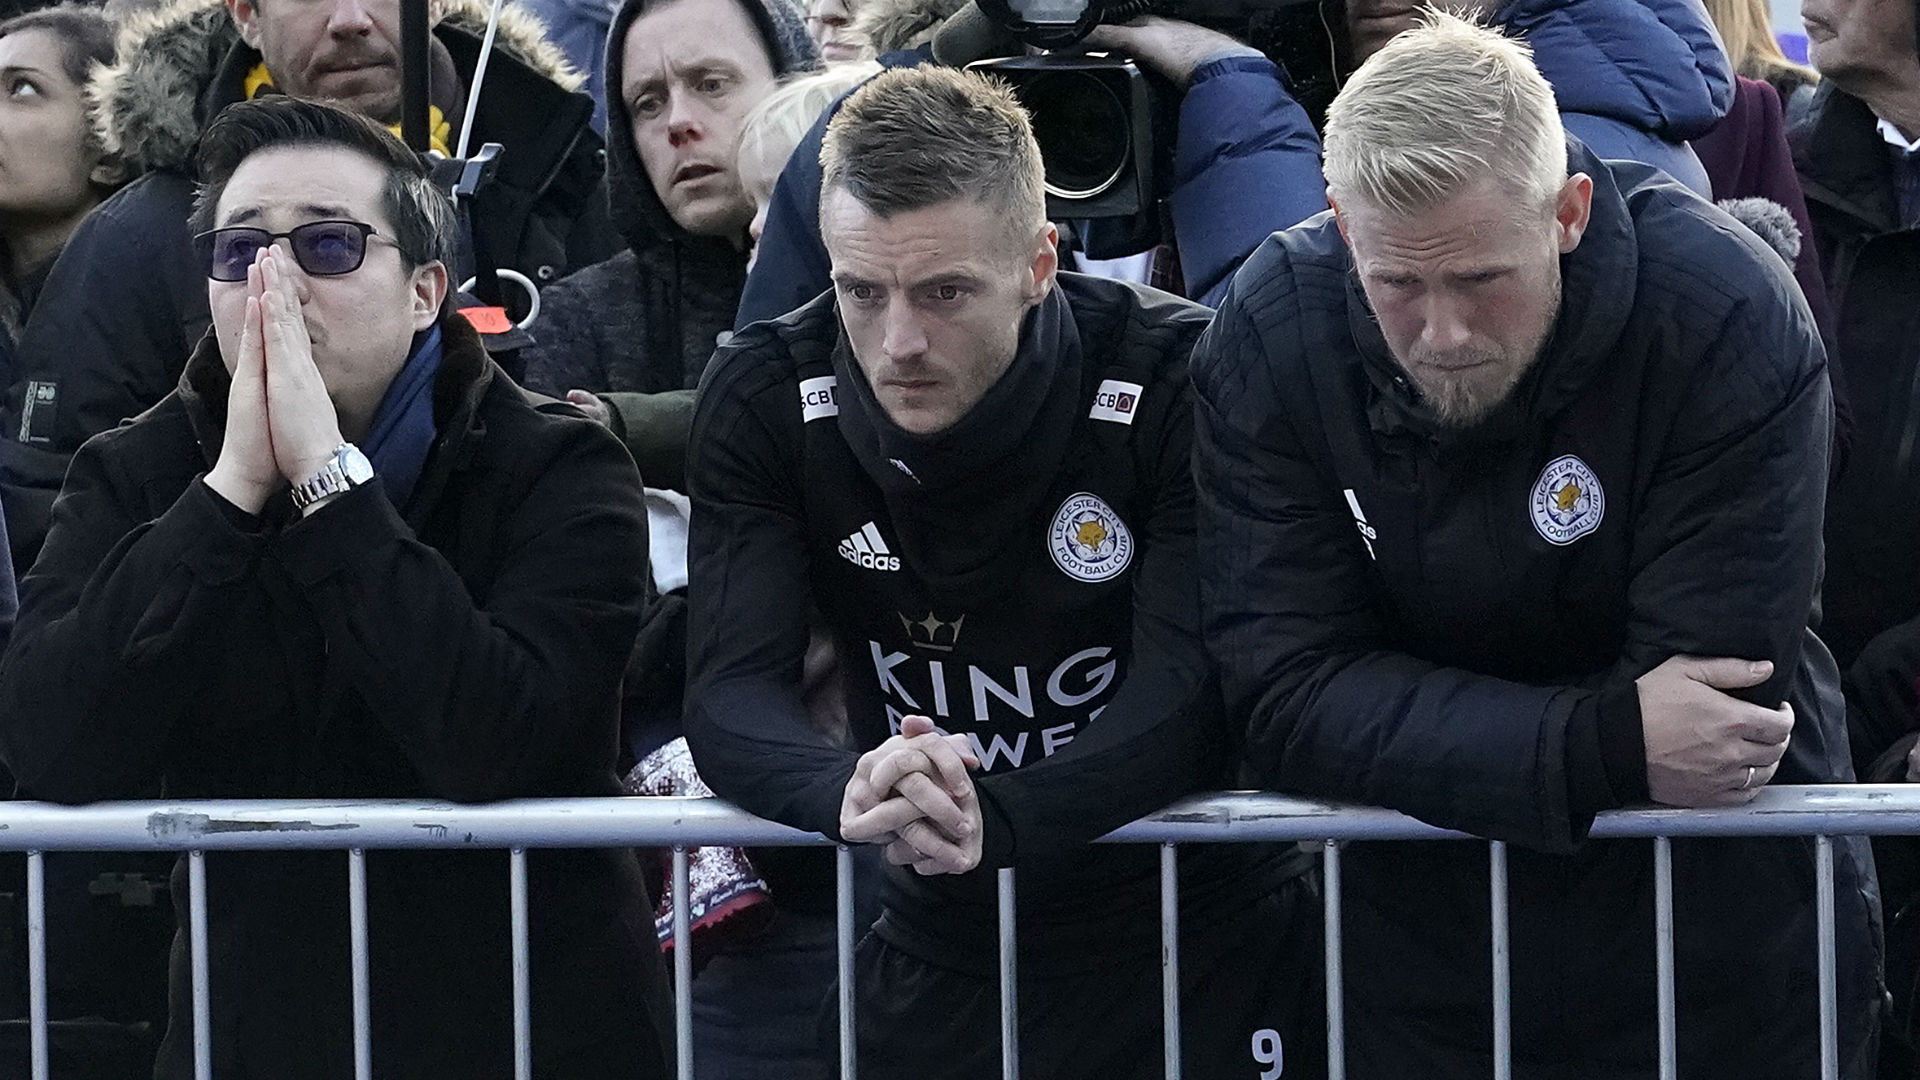 Kasper Schmeichel fears memory of helicopter crash will stay with him forever